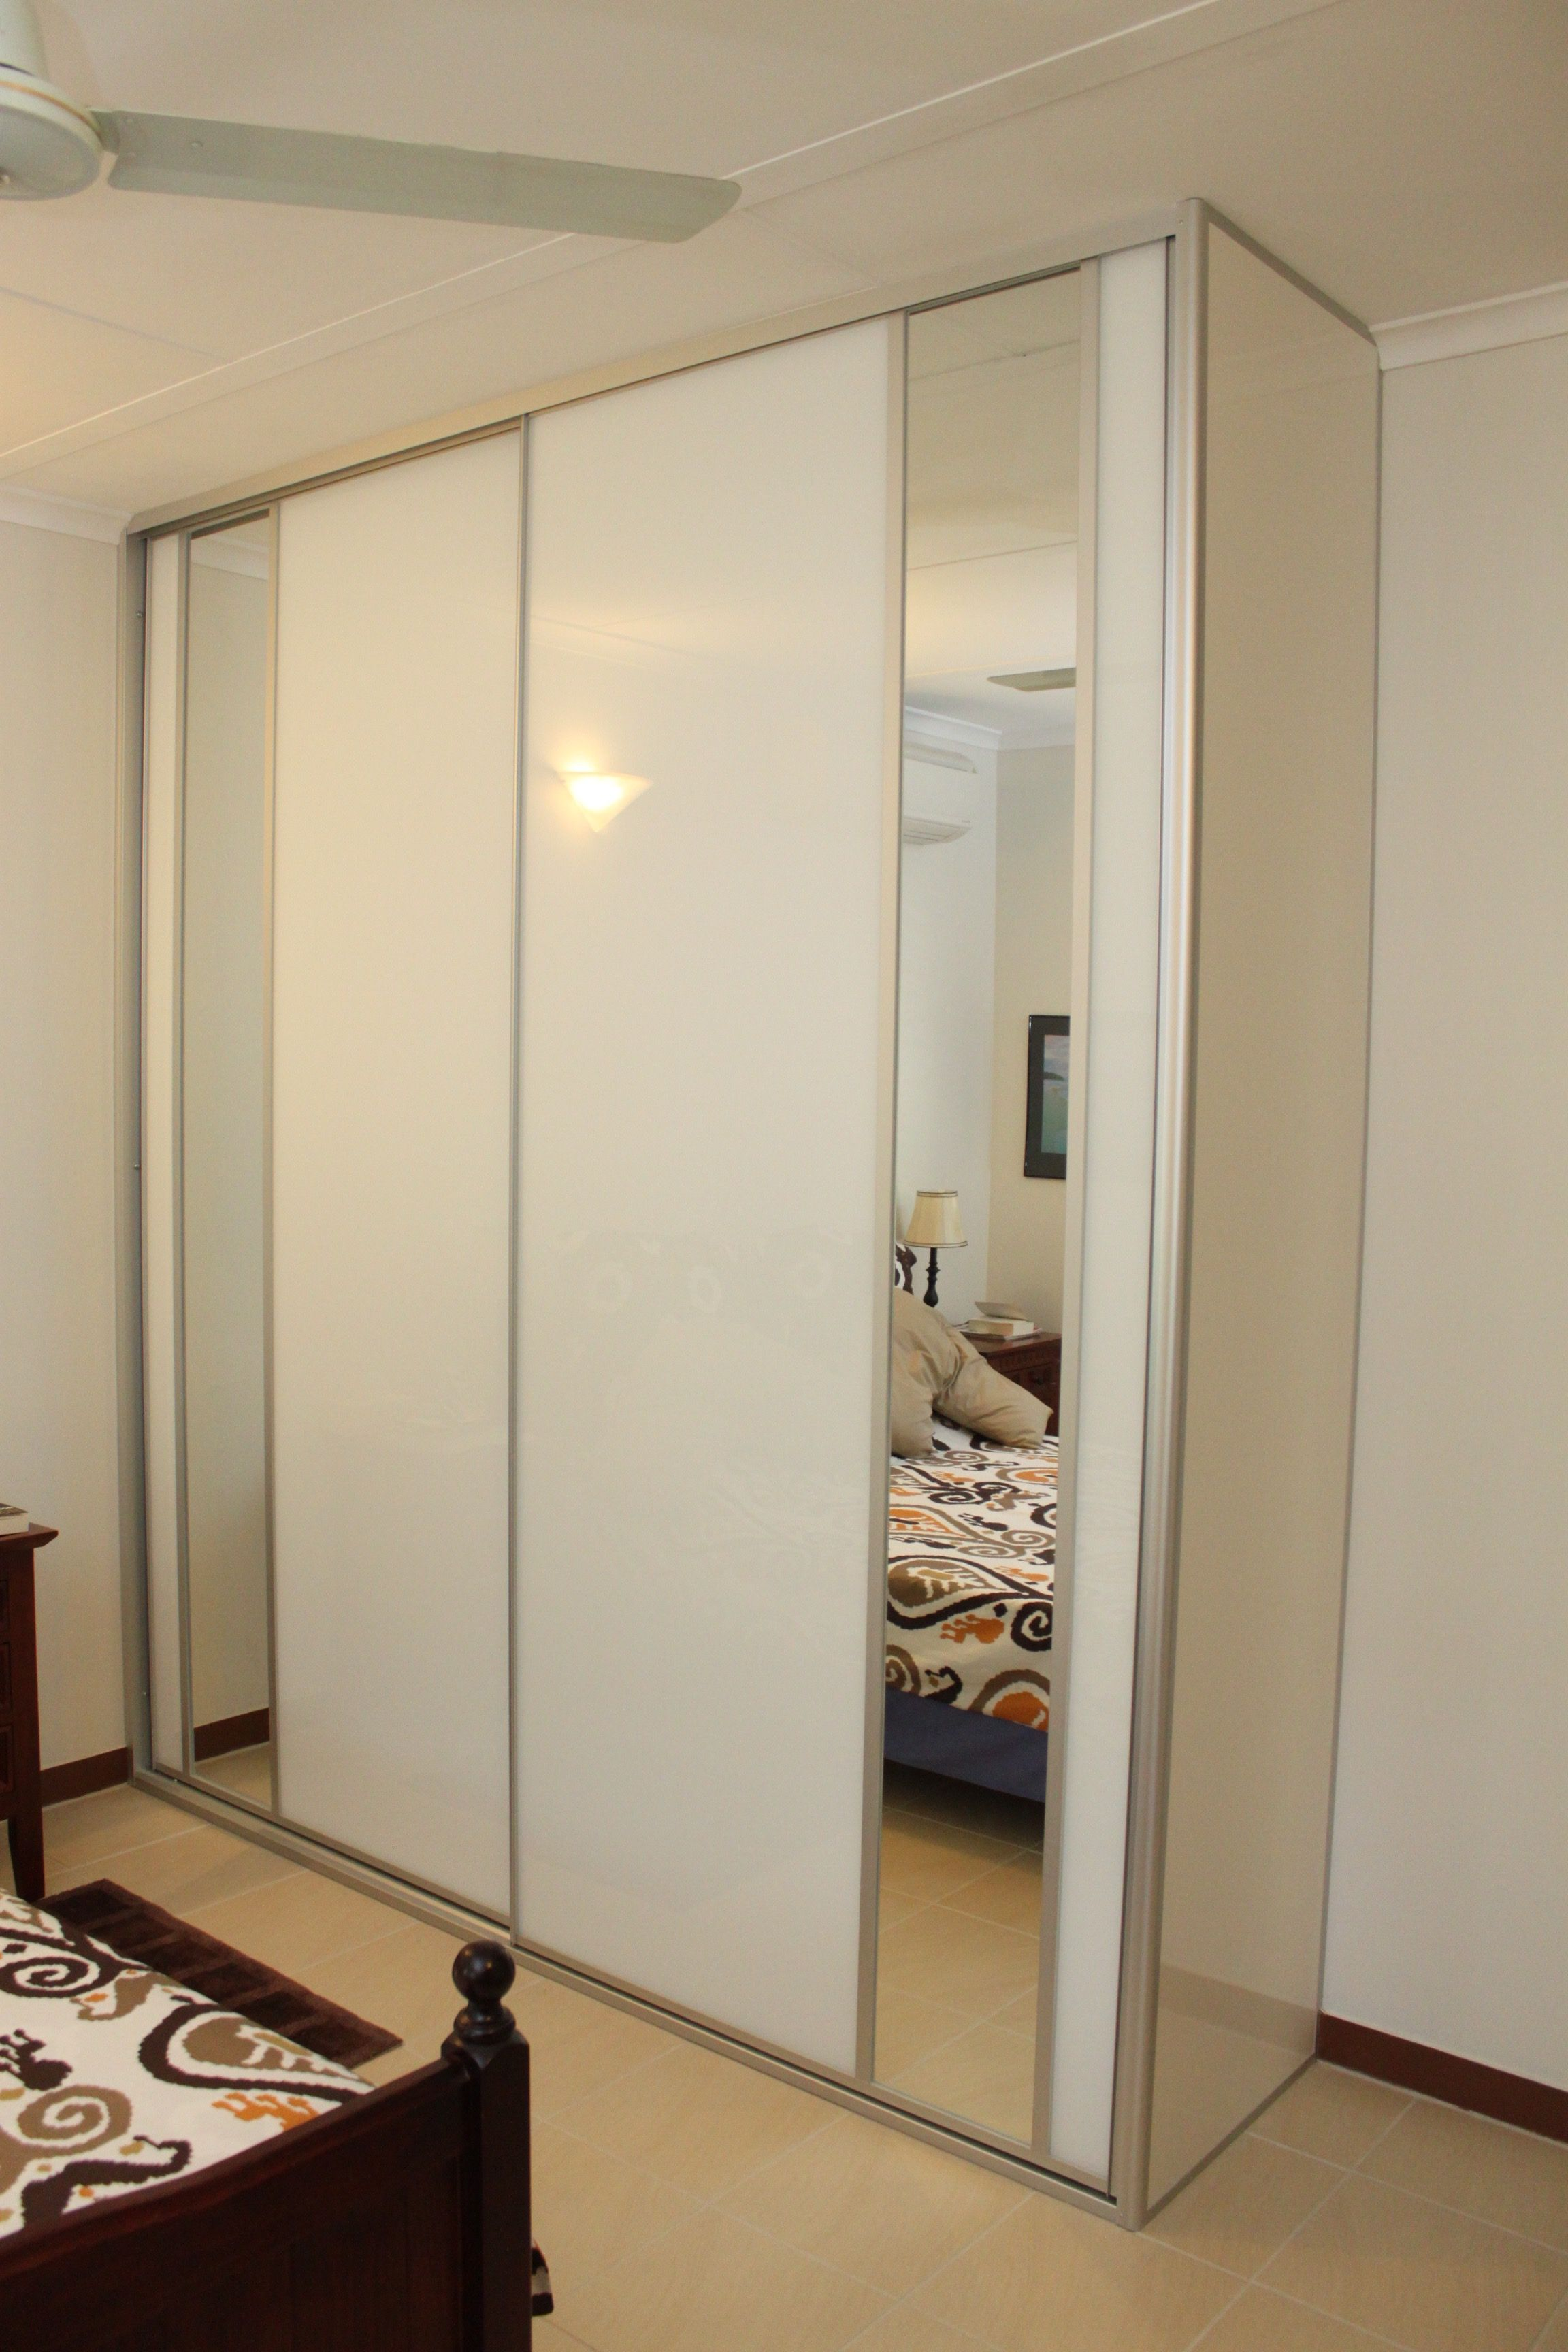 These Beautiful Sliding Doors Are From Our Mode Range We Have Used Super Clear White Gl And Silver Frames Clients Love The As They Still